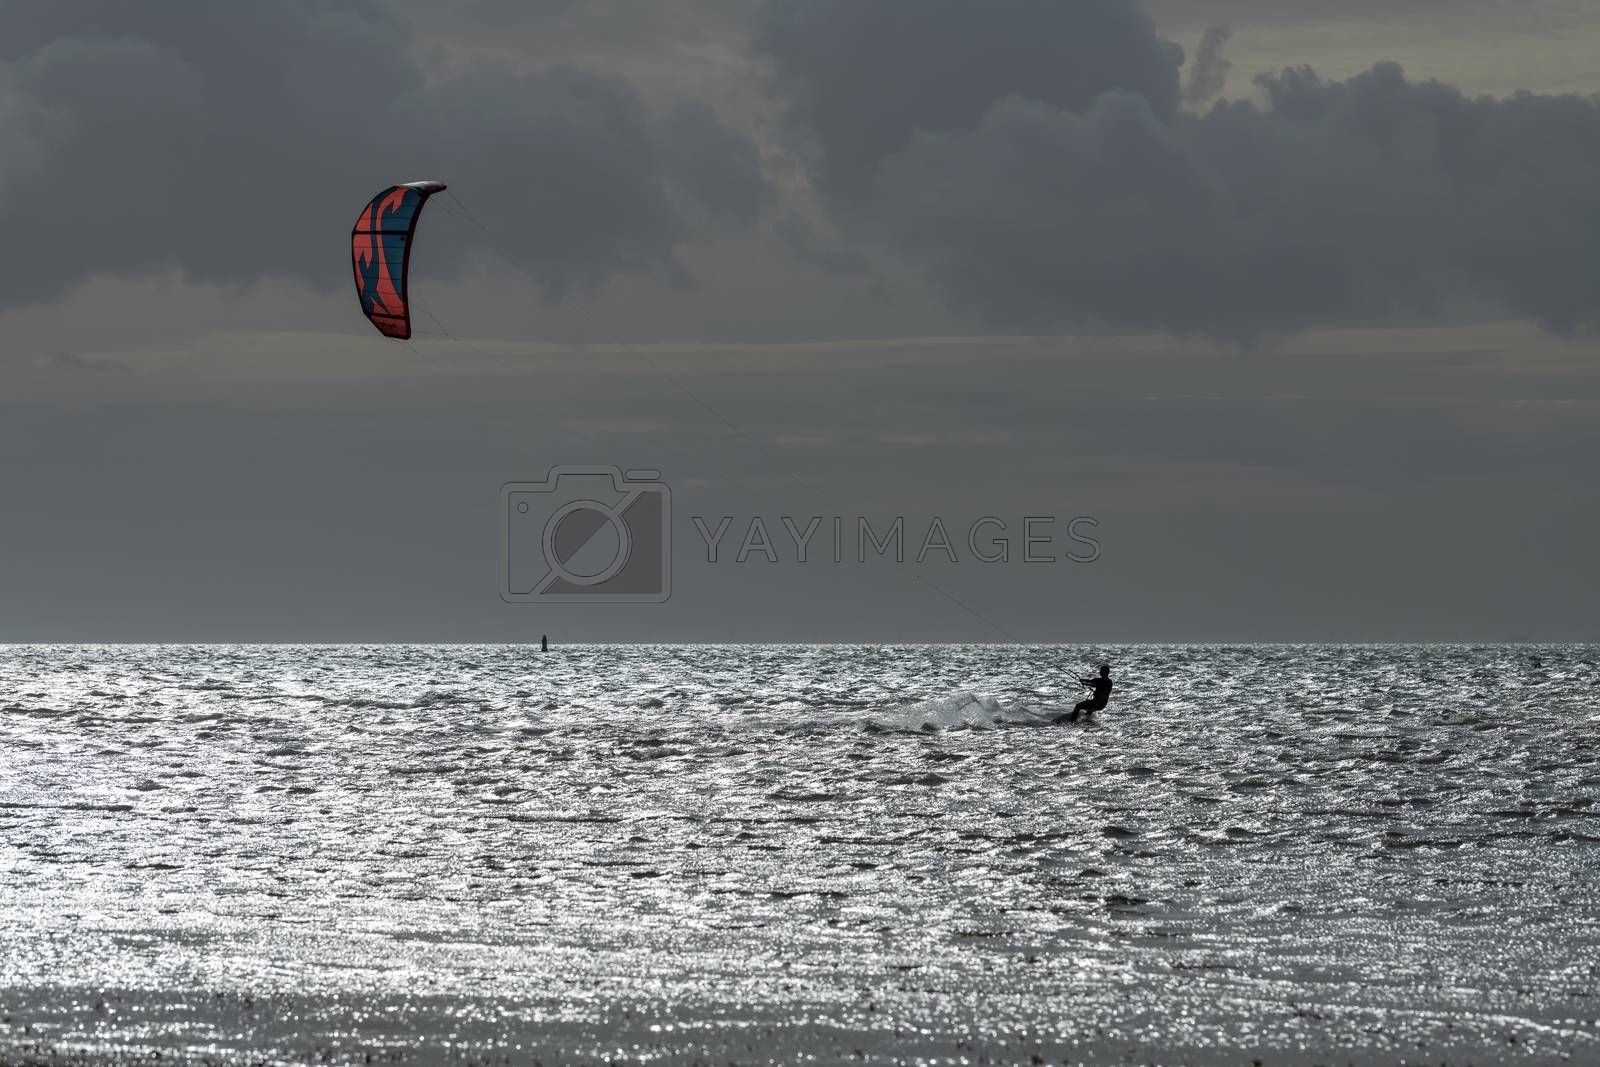 Sports kite surfer in the evening sun on the Wadden Sea near the island of Terschelling in the North of the Netherlands